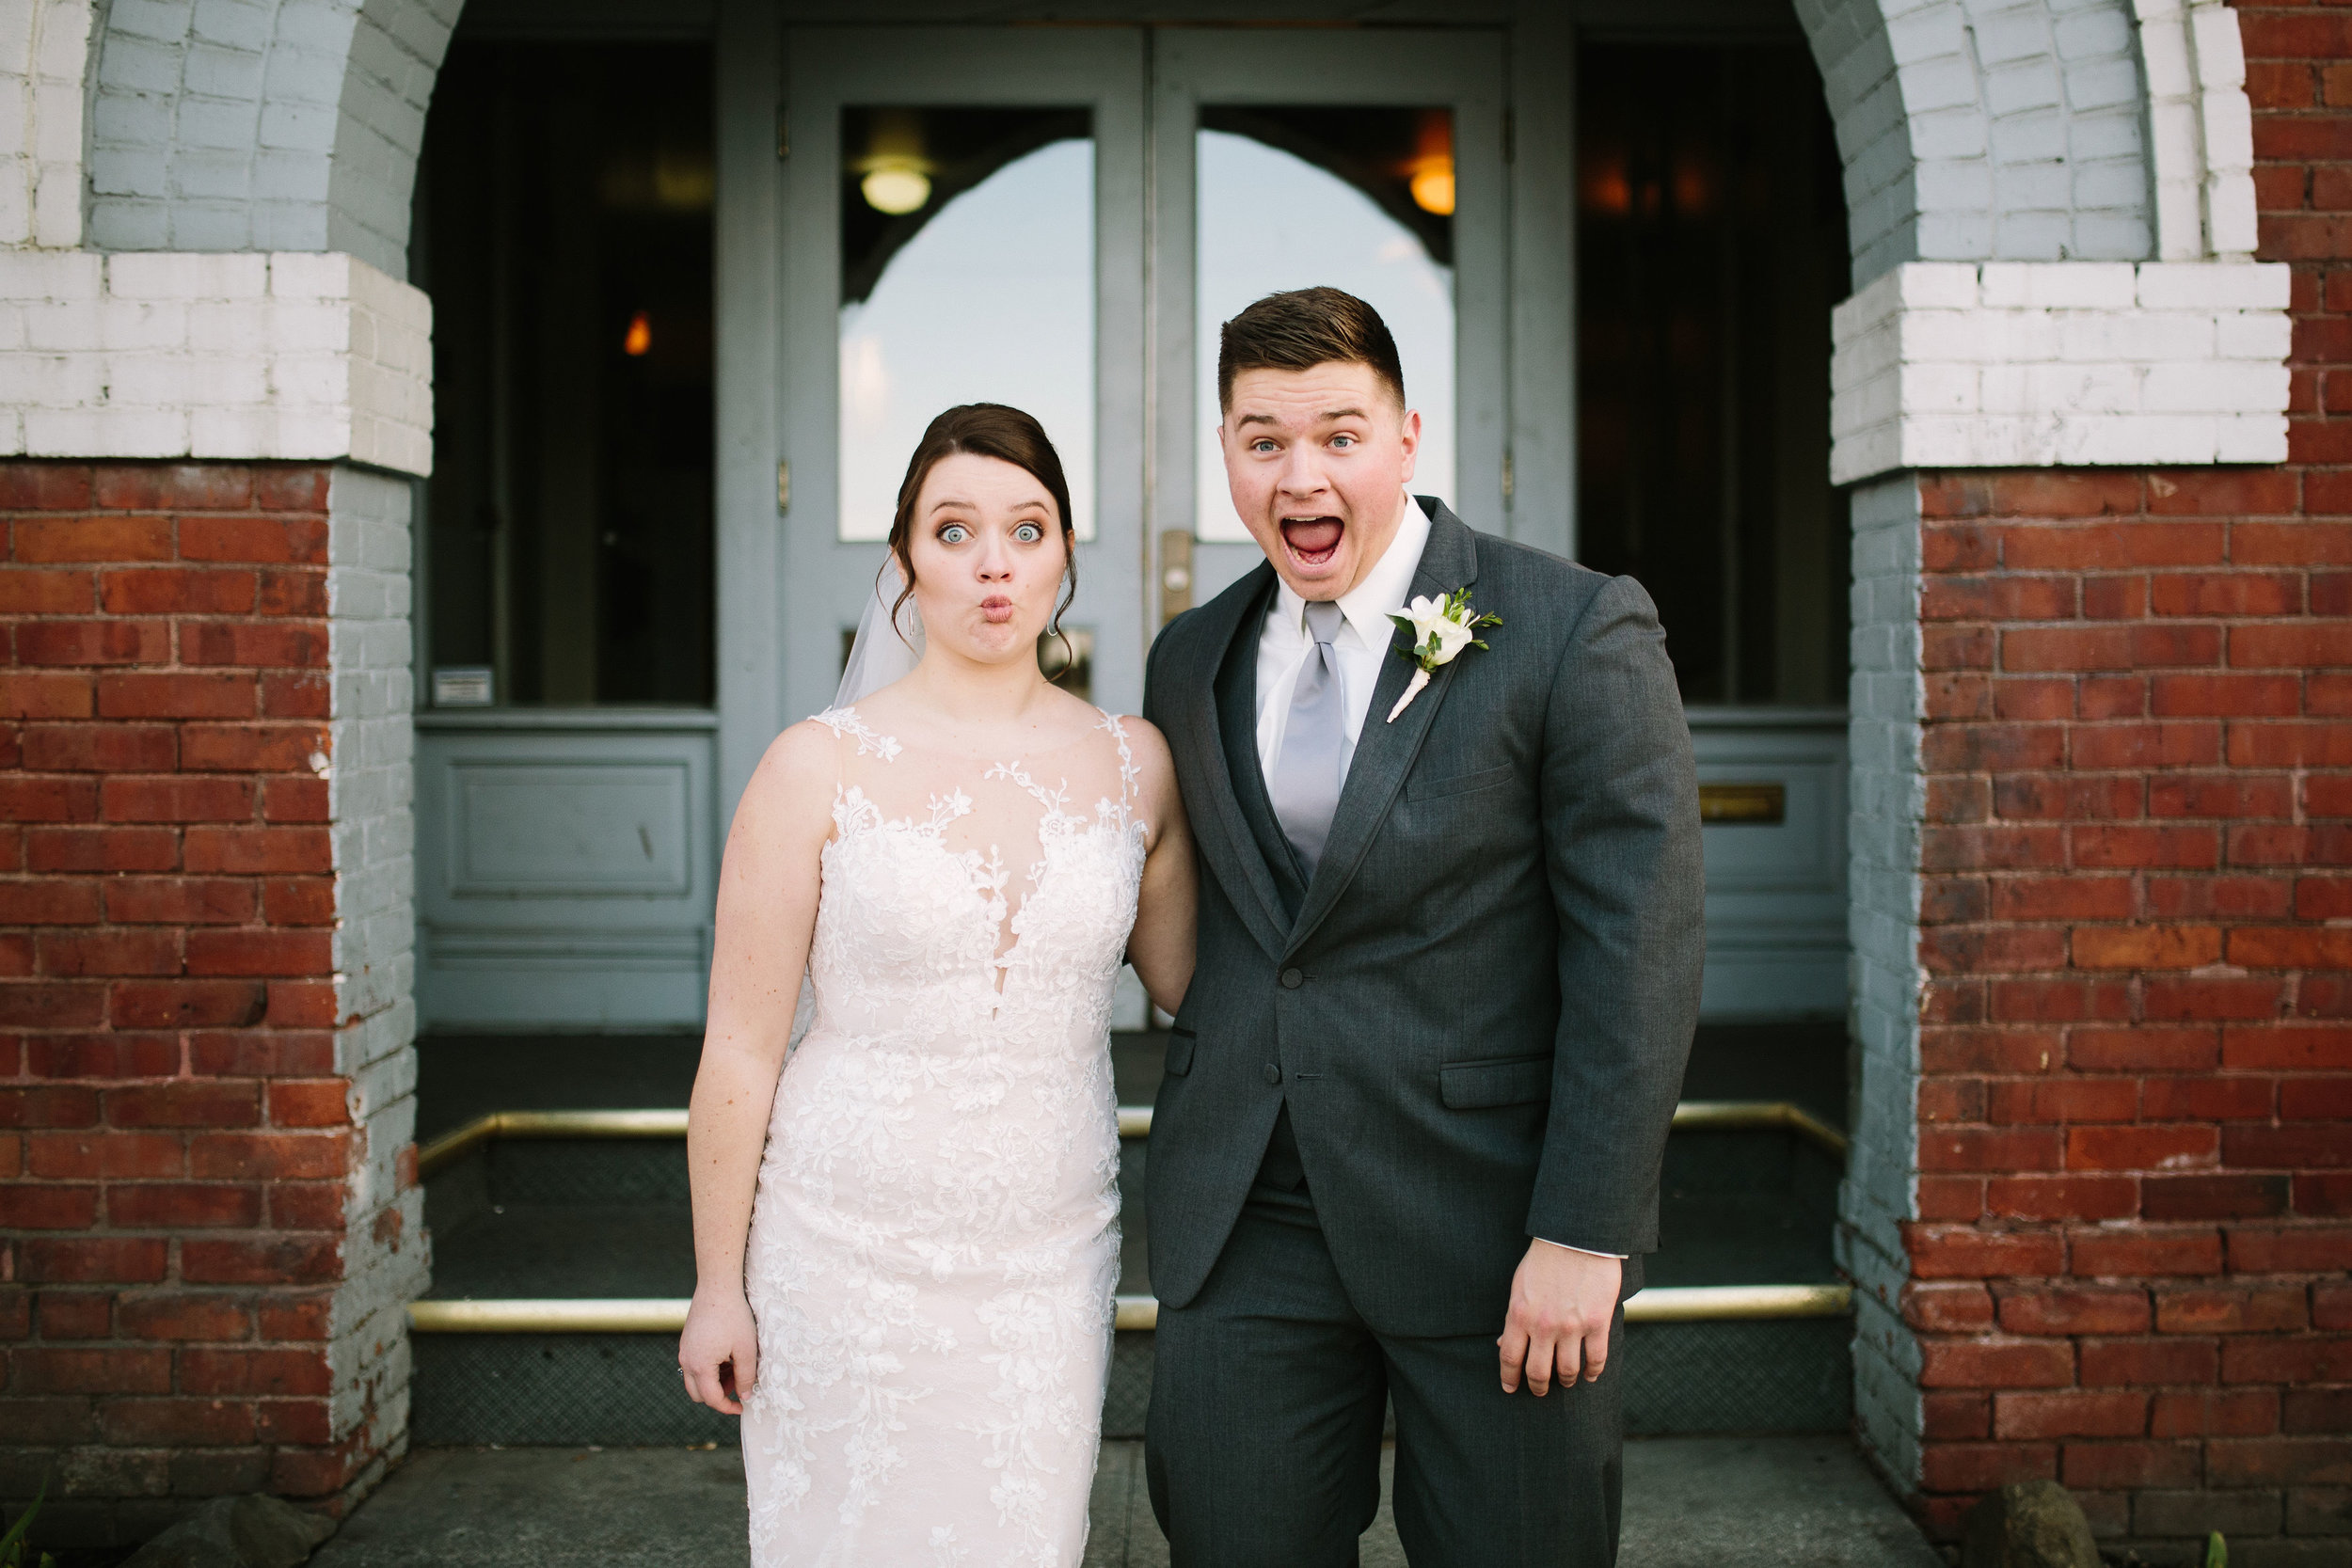 Fun Rustic spokane wedding silly faces outside of court house giddy bride and groom